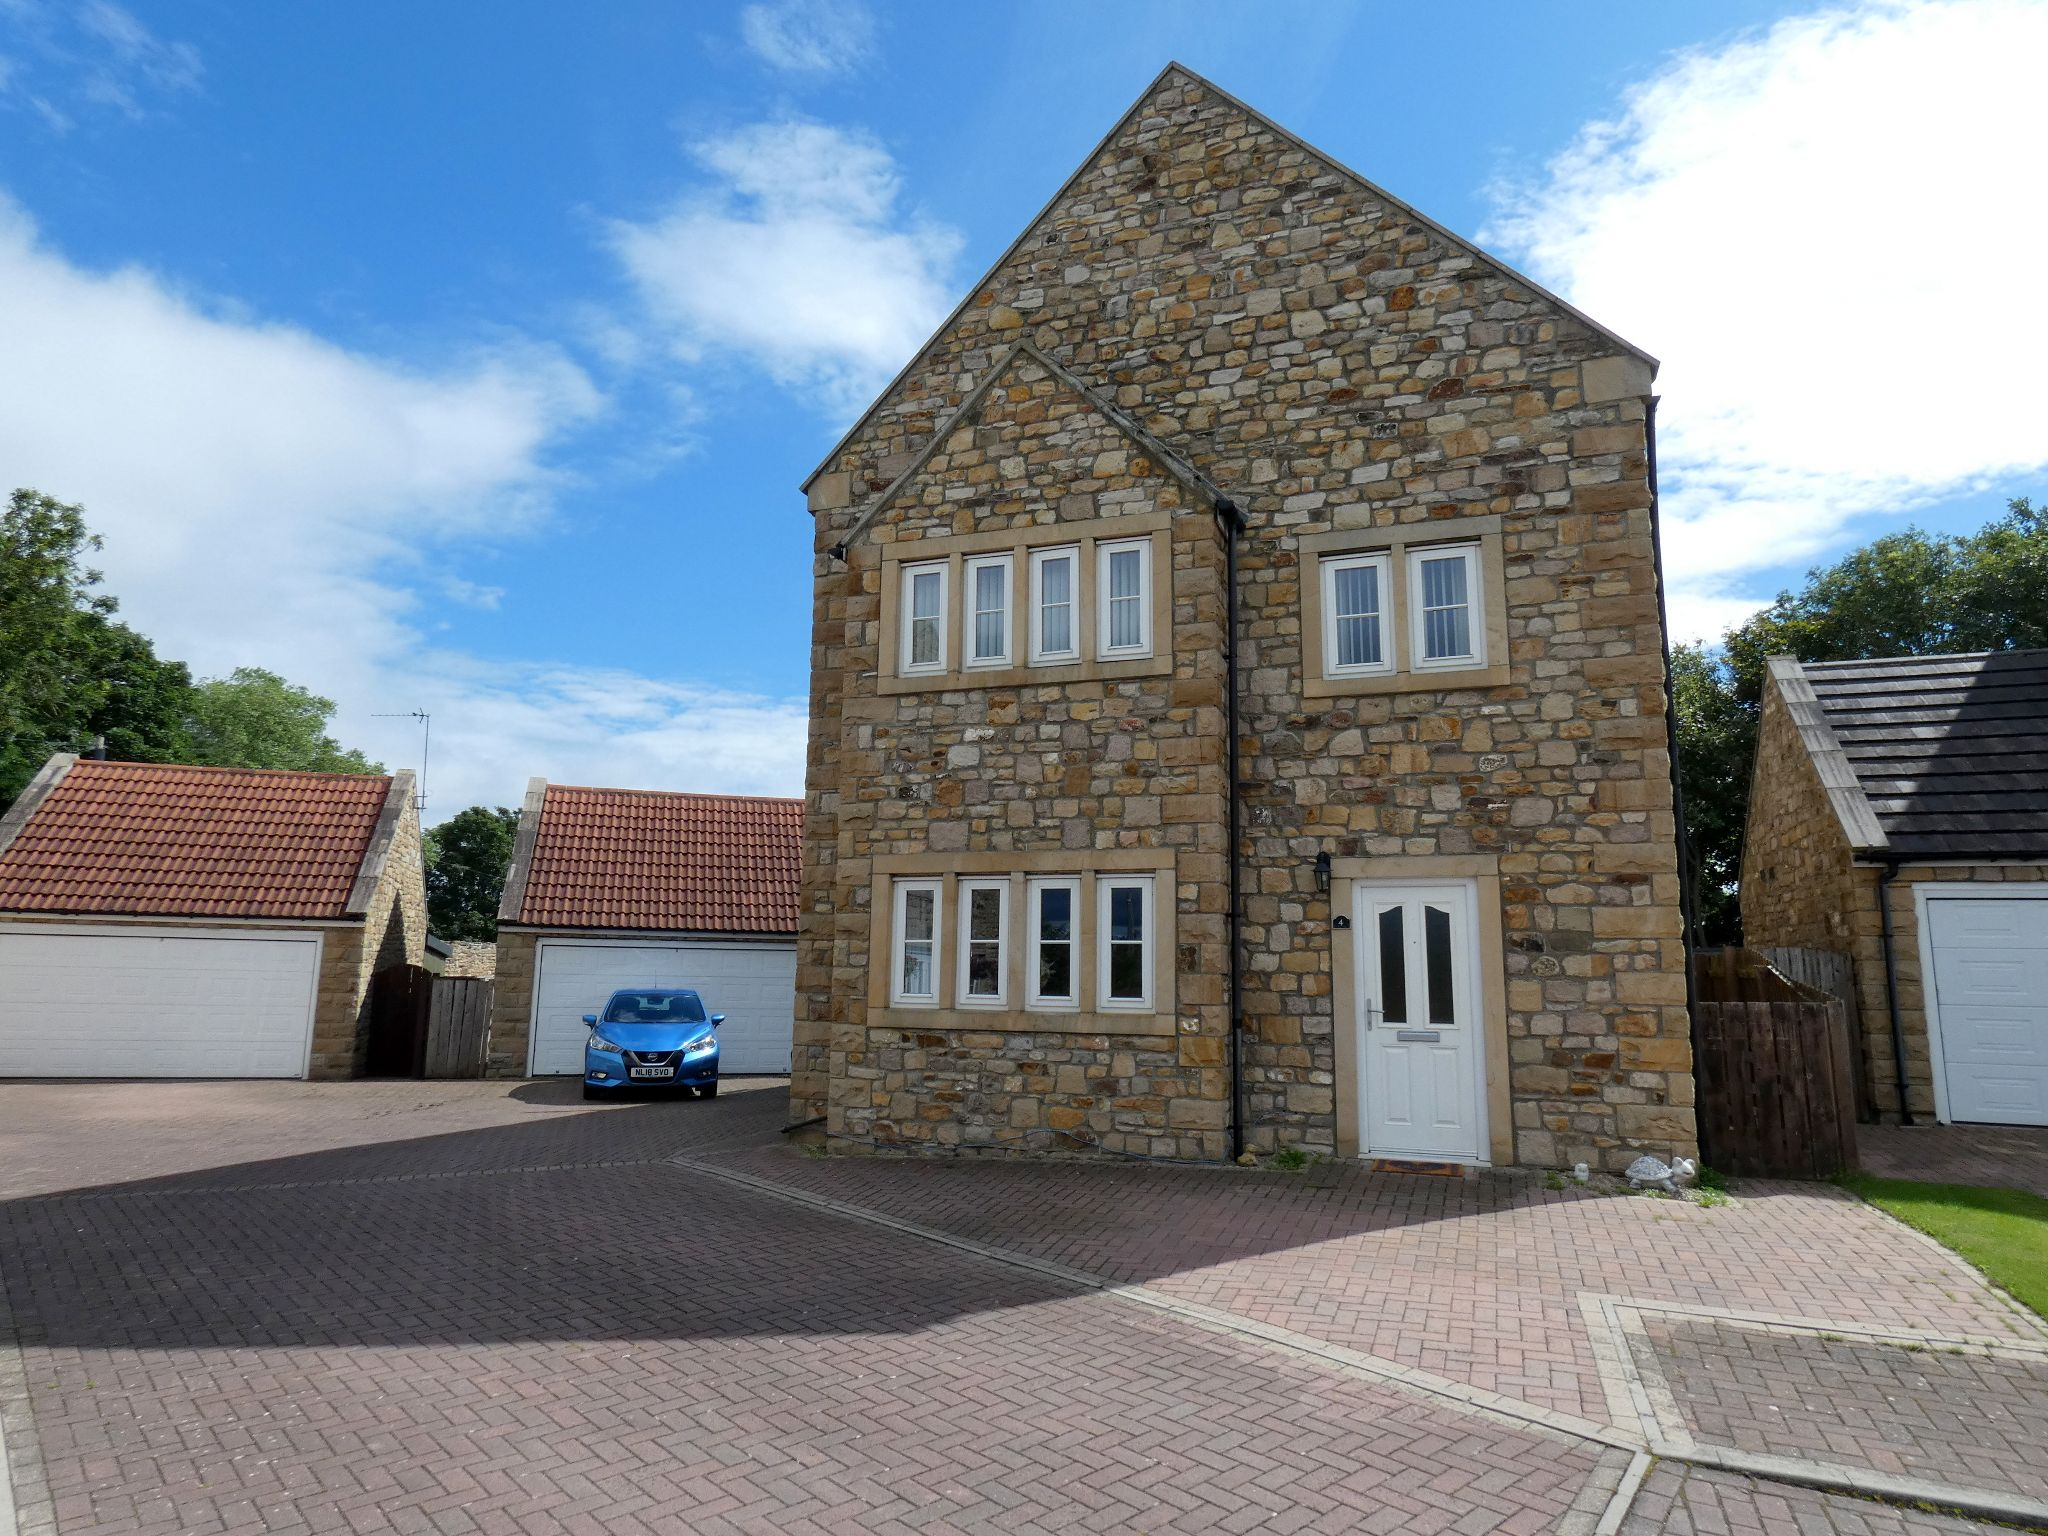 6 bedroom detached house For Sale in Bishop Auckland - Front Elevation.